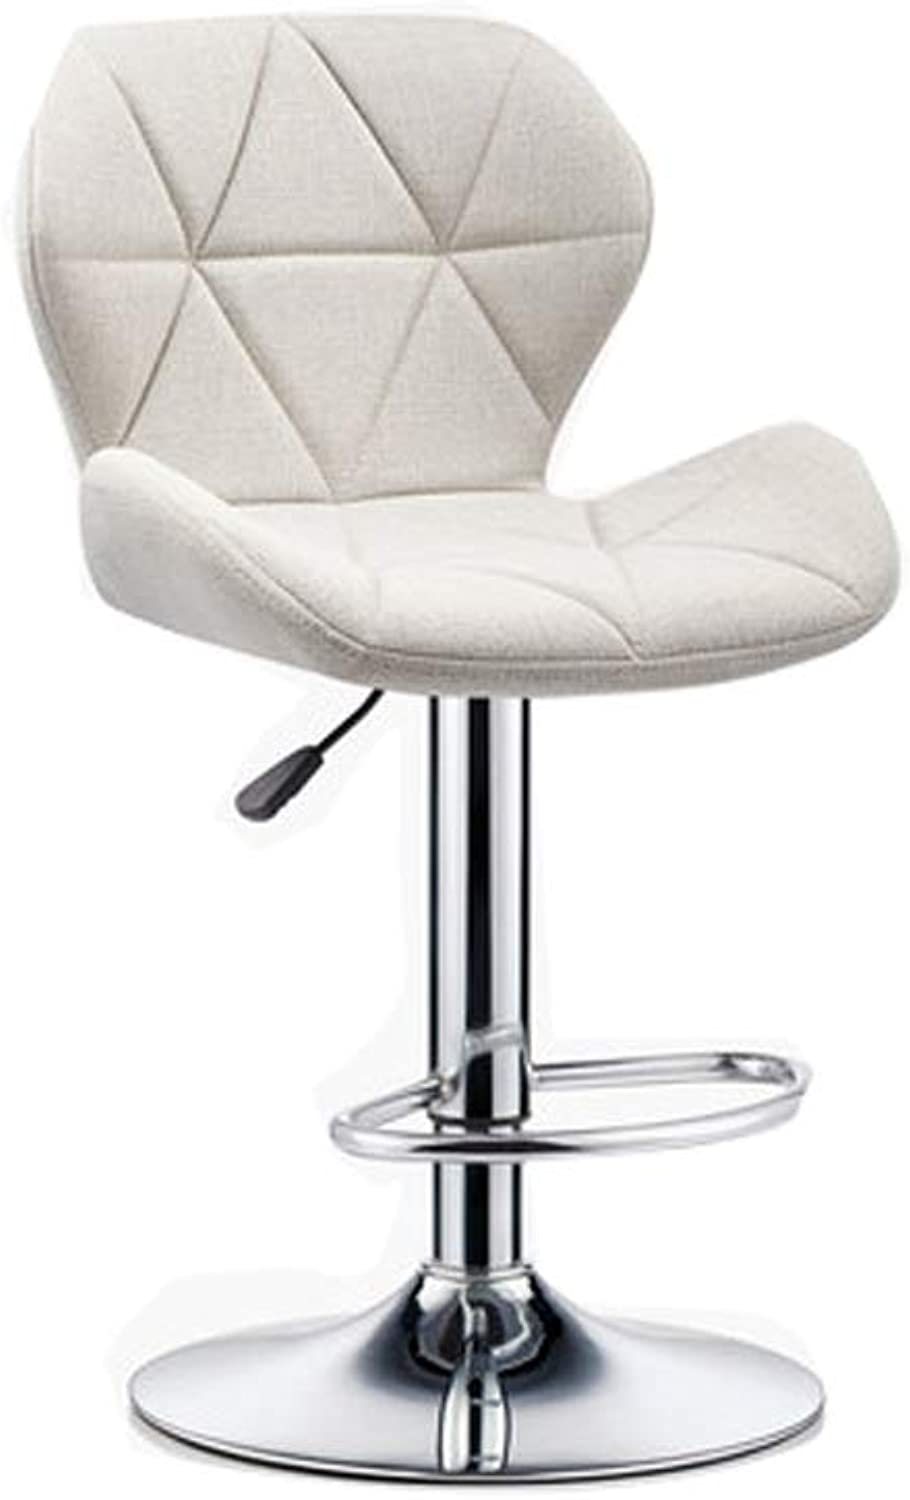 Barstool Nordic bar Chair Home high Stool 5 colors Adjustable Height 60cm to 115cm (color   White)